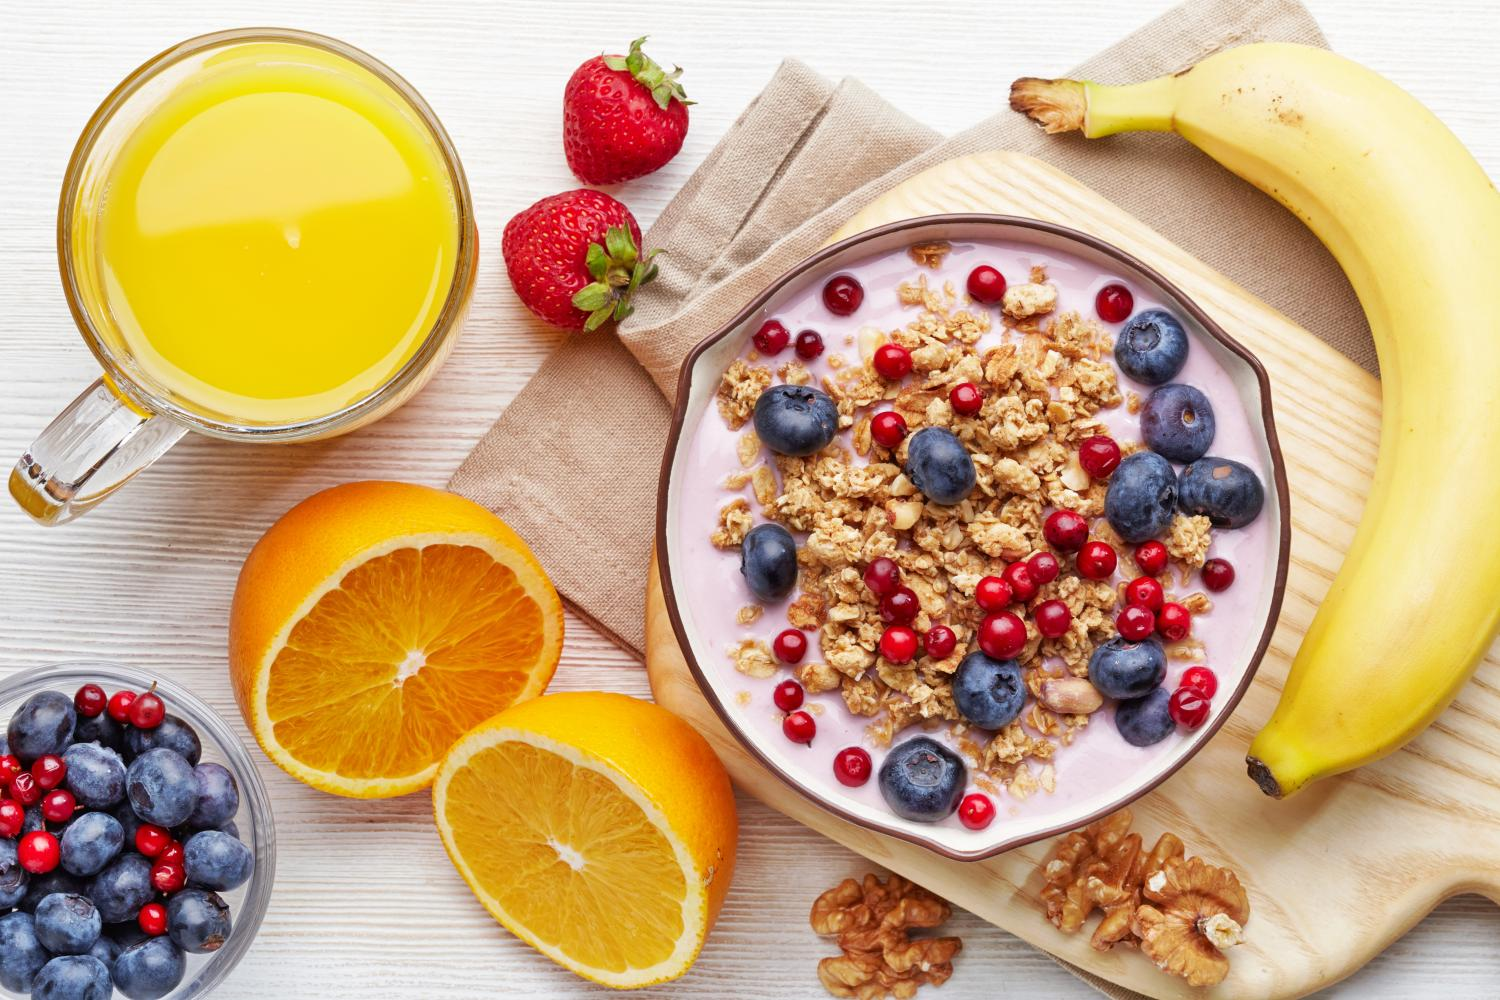 Nutritionist tips to avoid overeating